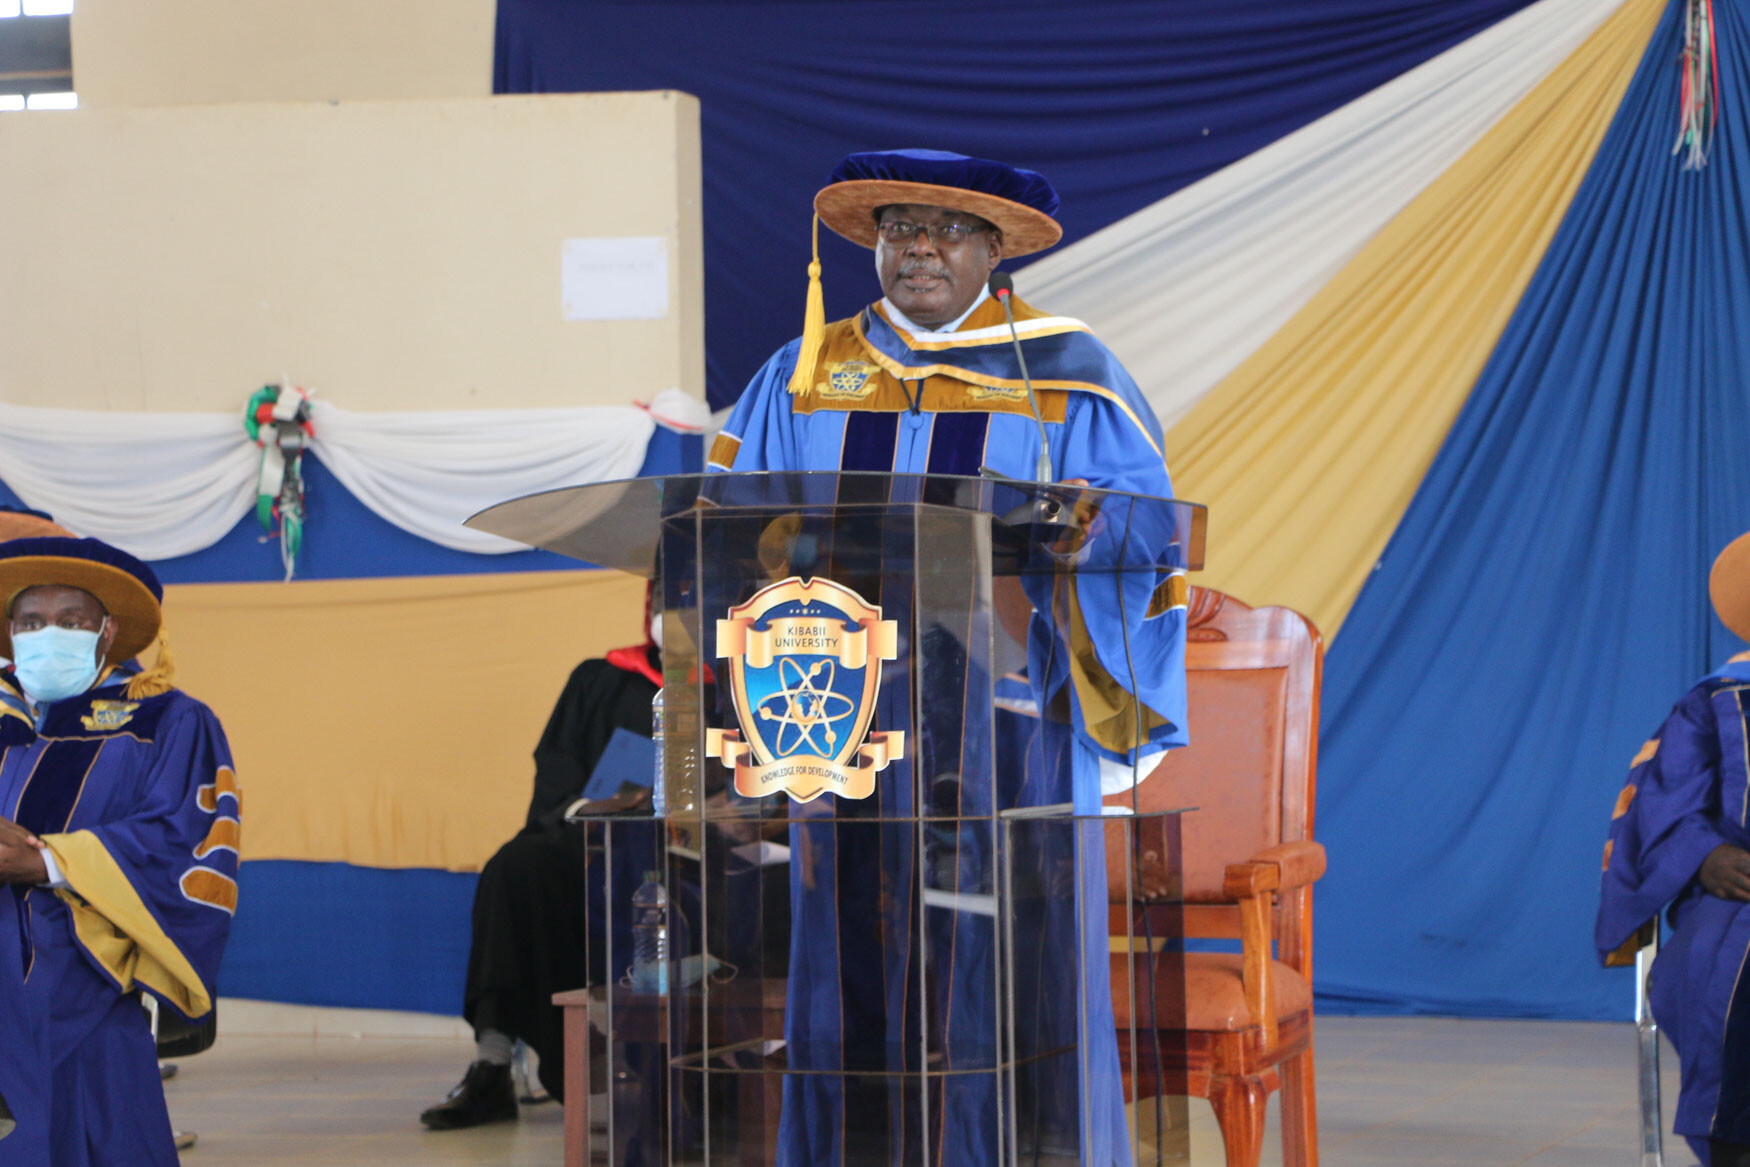 Speech by the Vice Chancellor Presented during the Virtual Orientation of Freshers